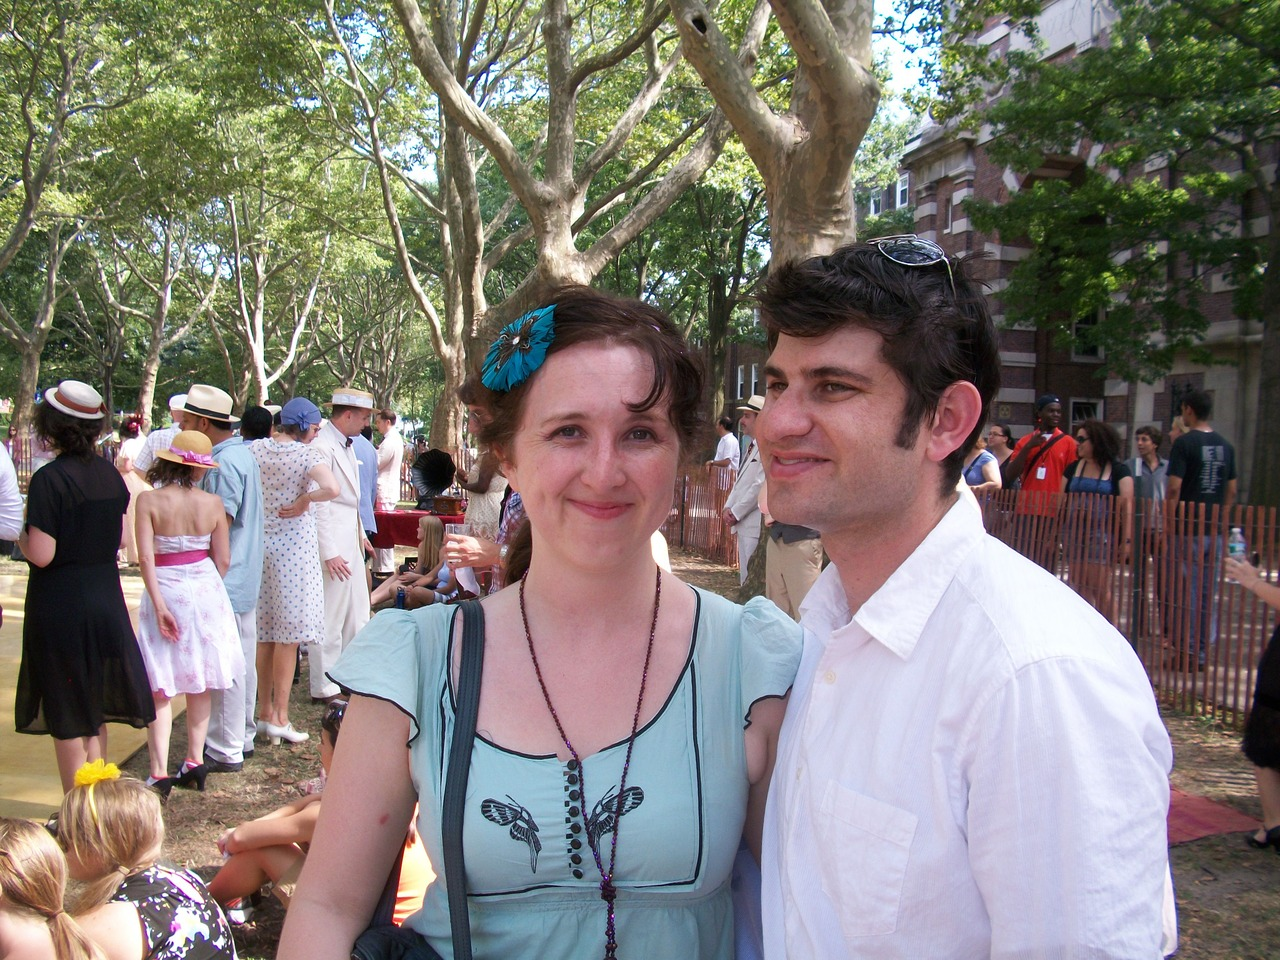 Jazz Age Lawn Party, Governor's Island. We may have heatstroke in this photo.